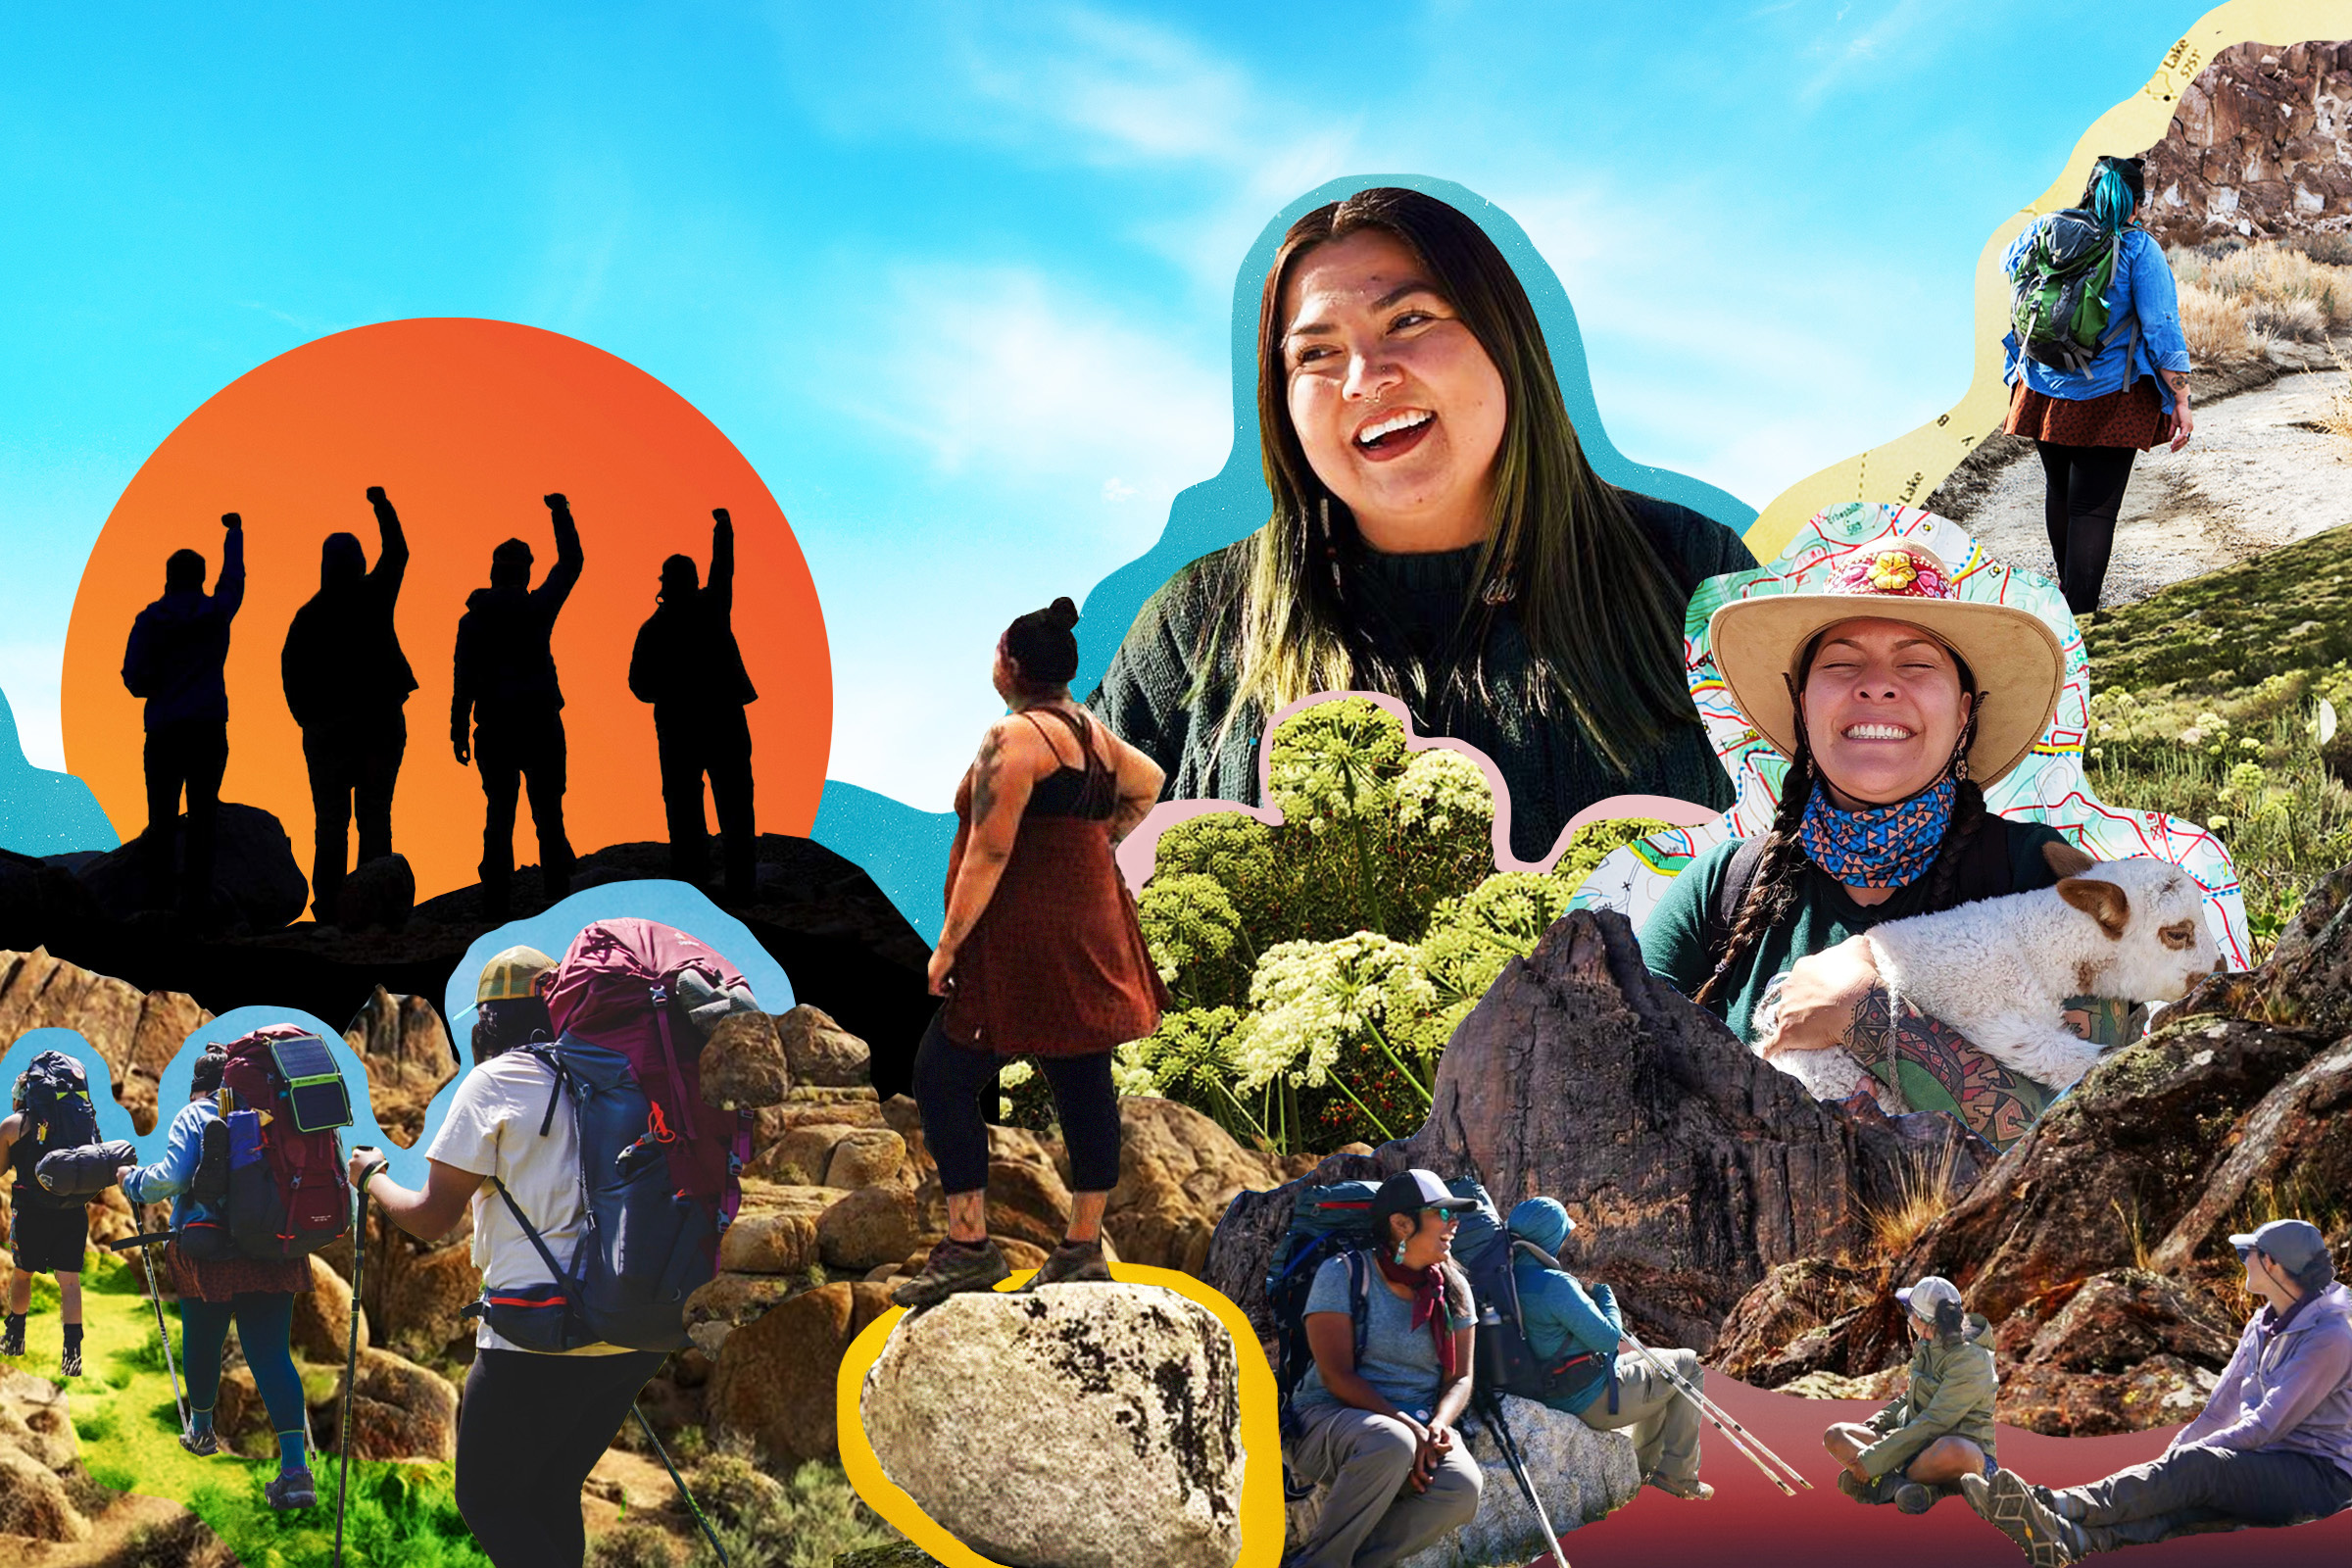 a collage of Indigenous women hiking through the mountains